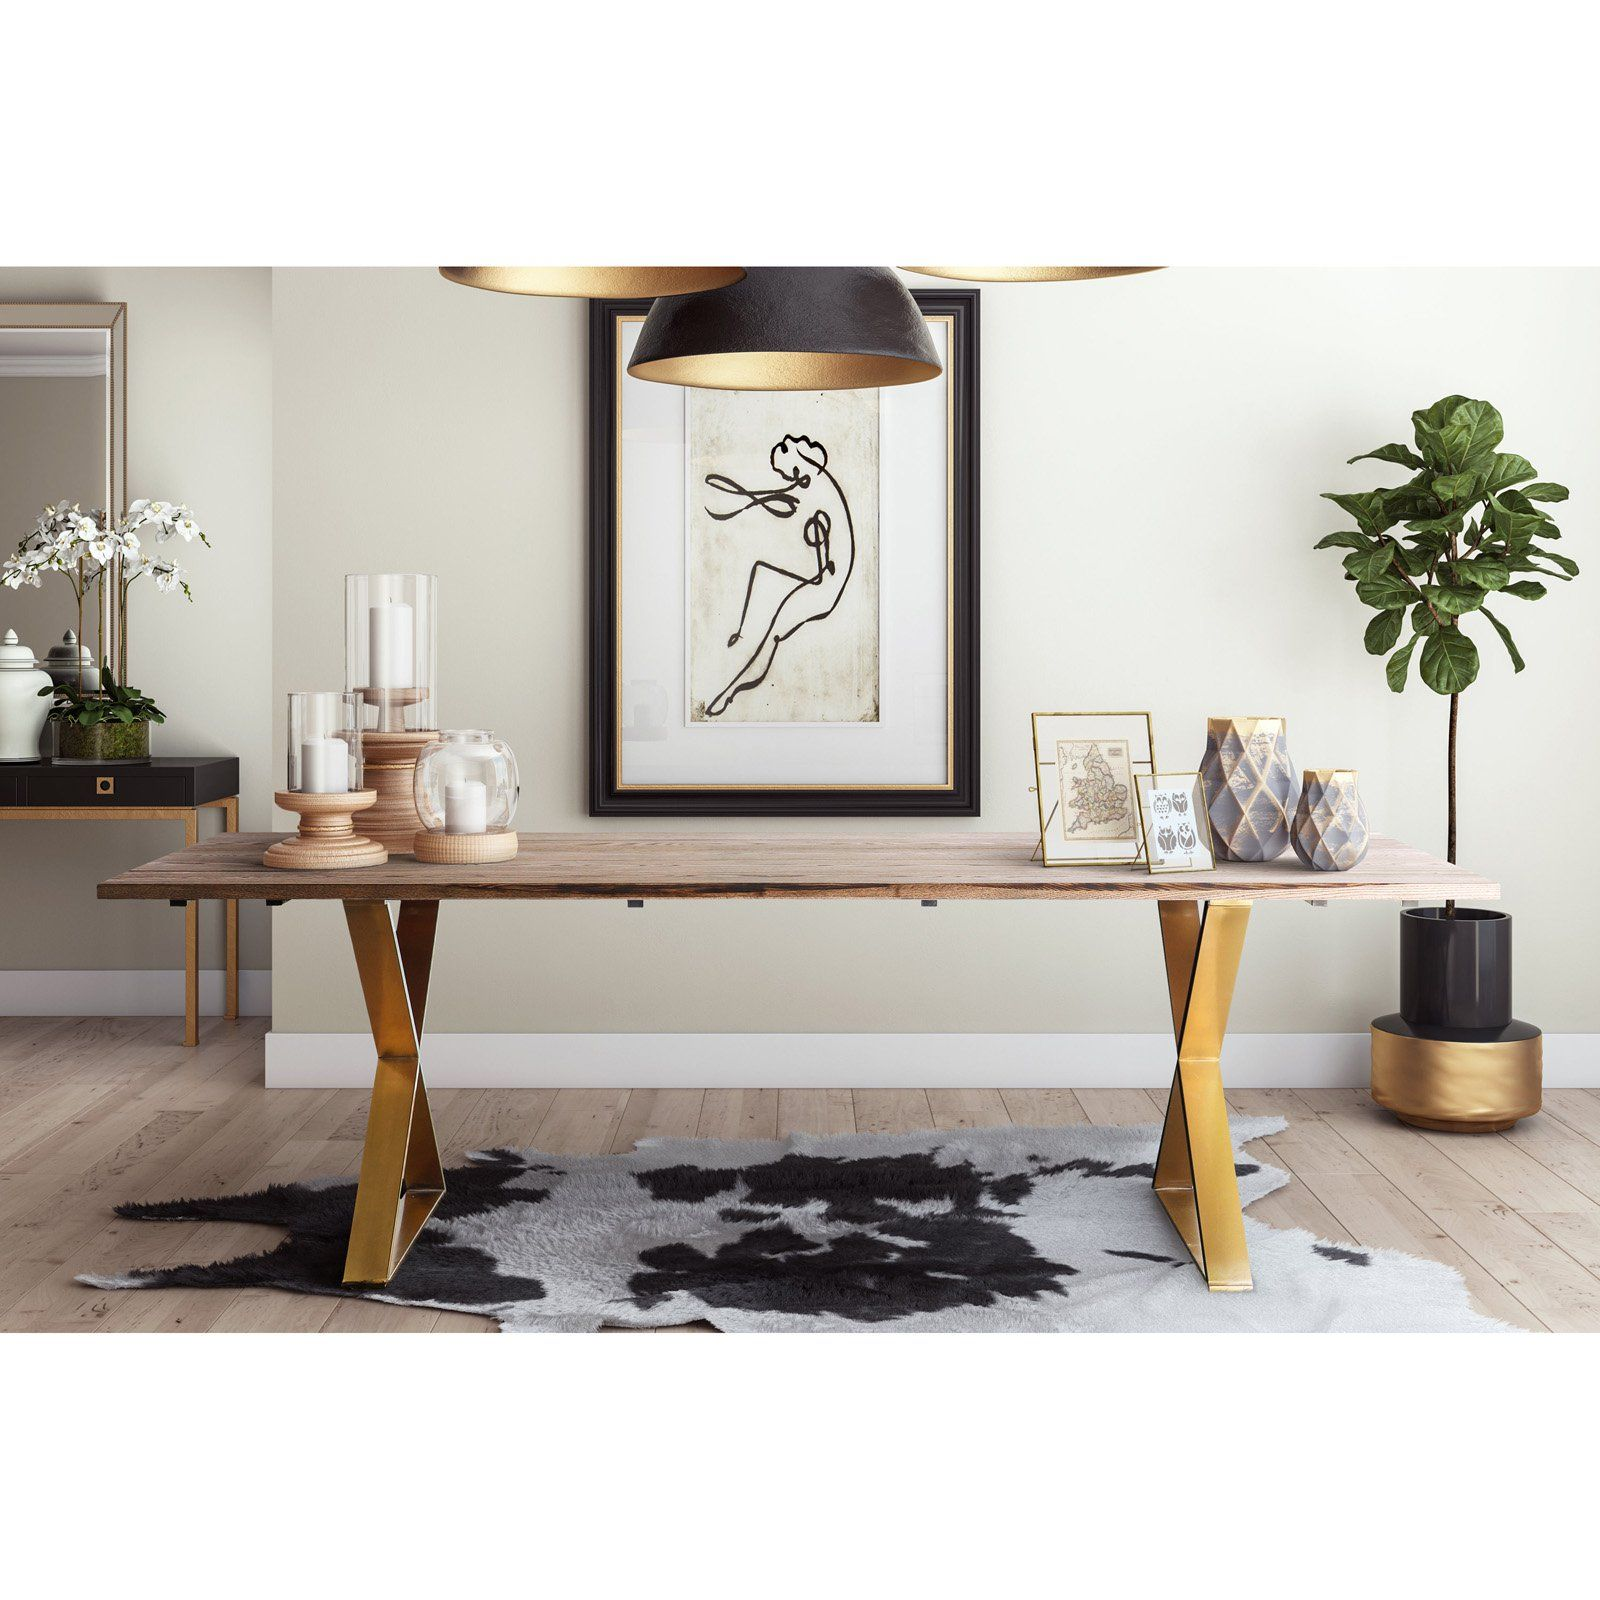 Tov Furniture Leah Dining Table Dining Table Modern Dining